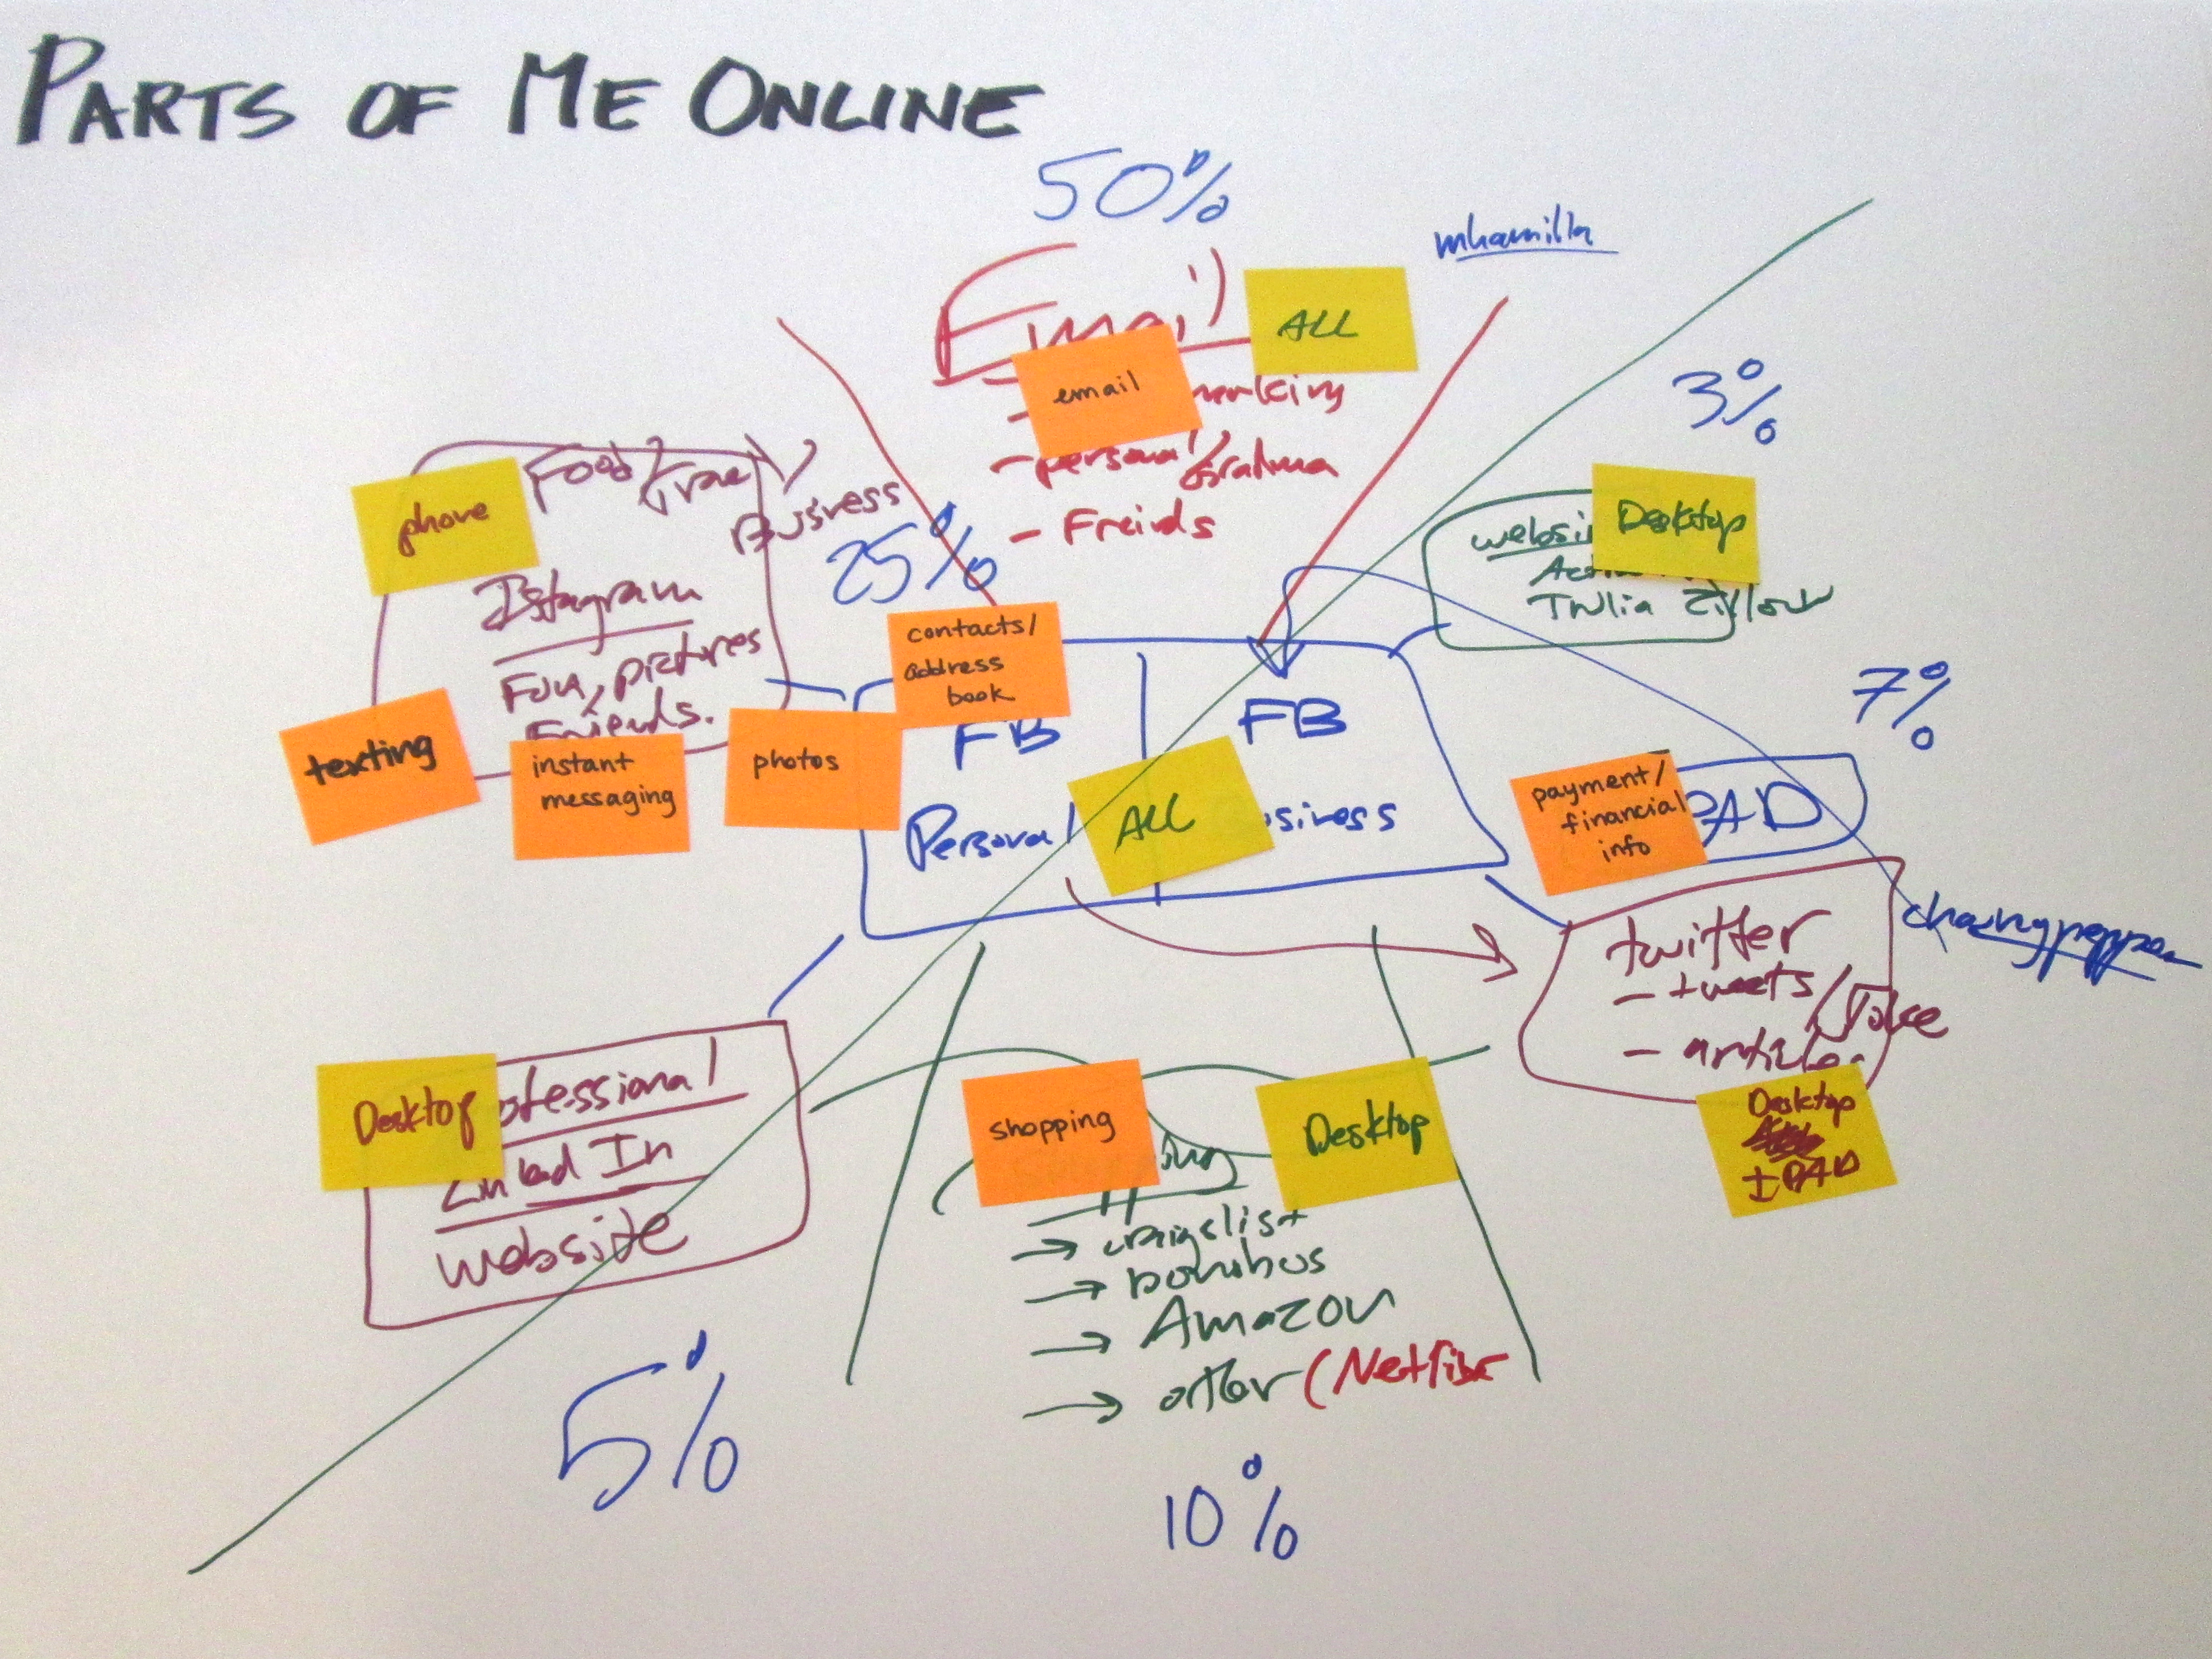 Person 3&#039;s map of his online life